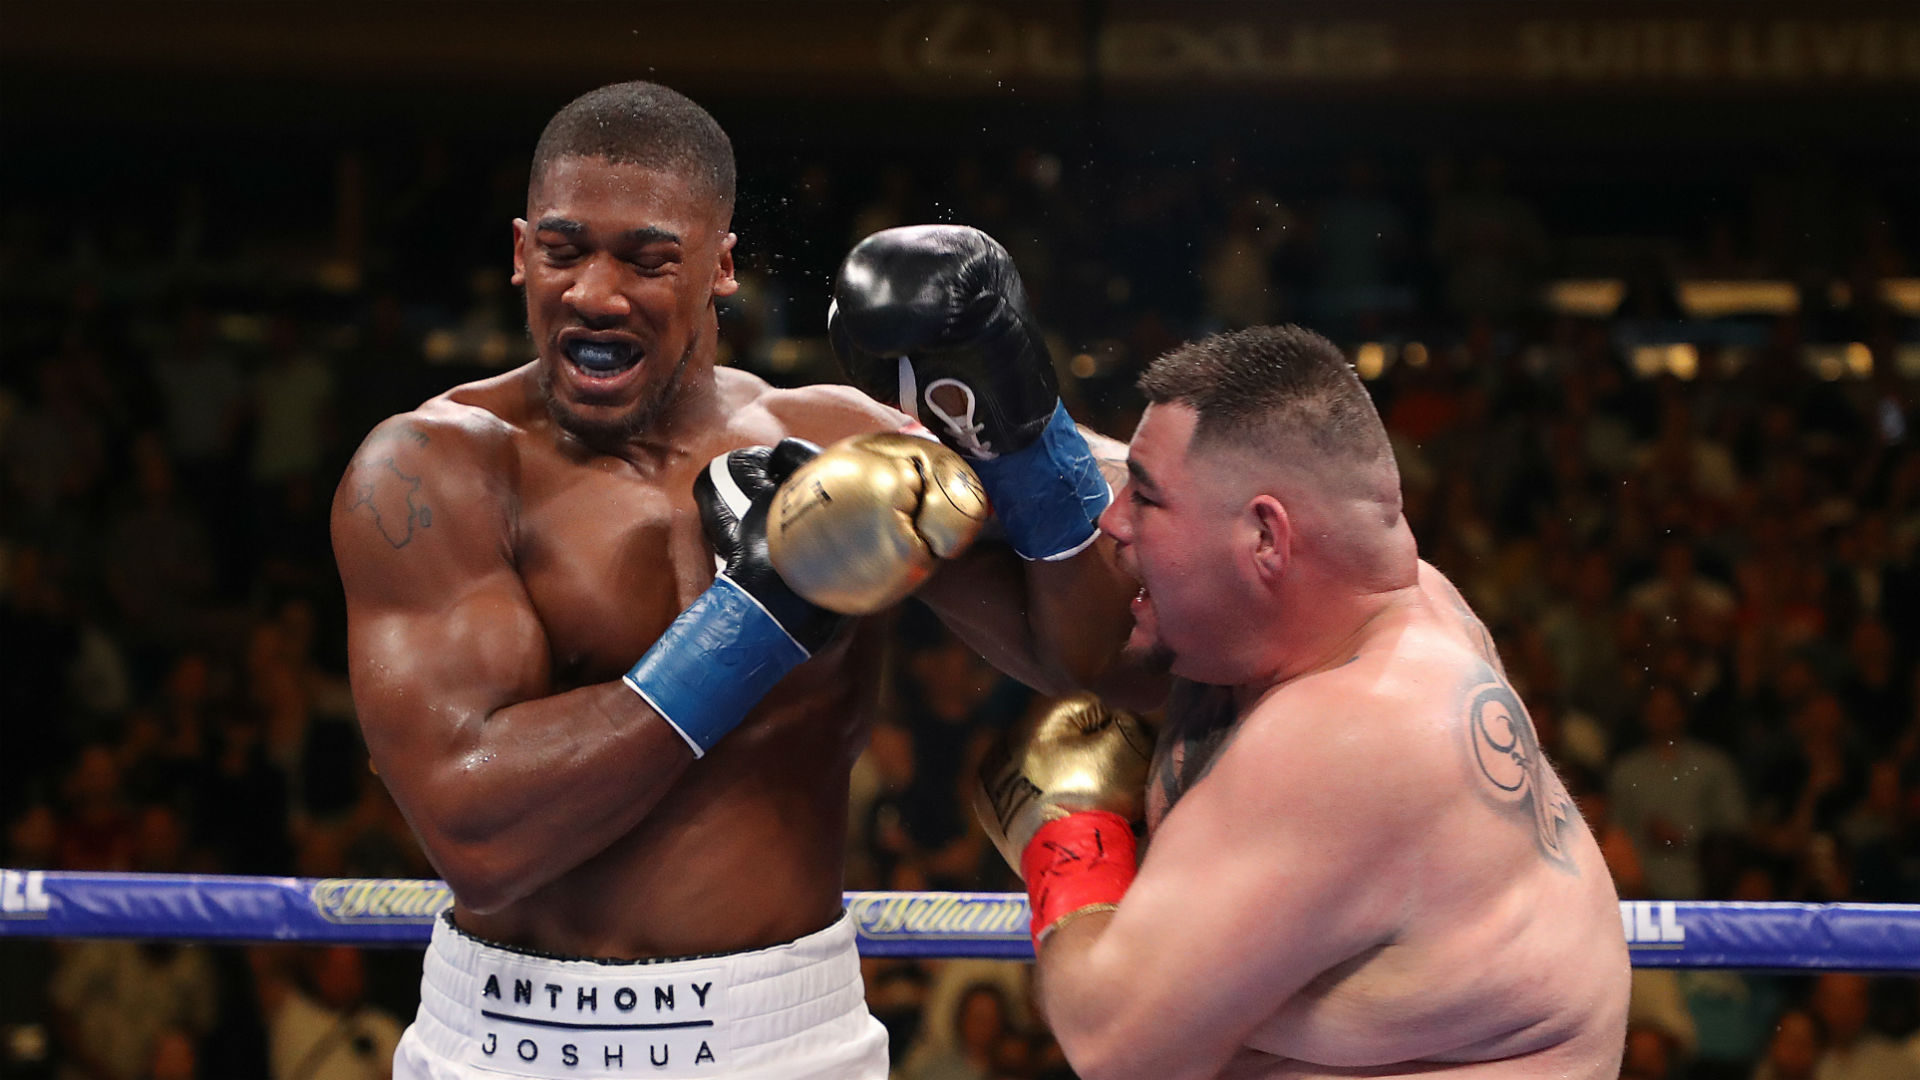 I don't want 15 minutes of fame - Ruiz plans long reign ahead of Joshua rematch